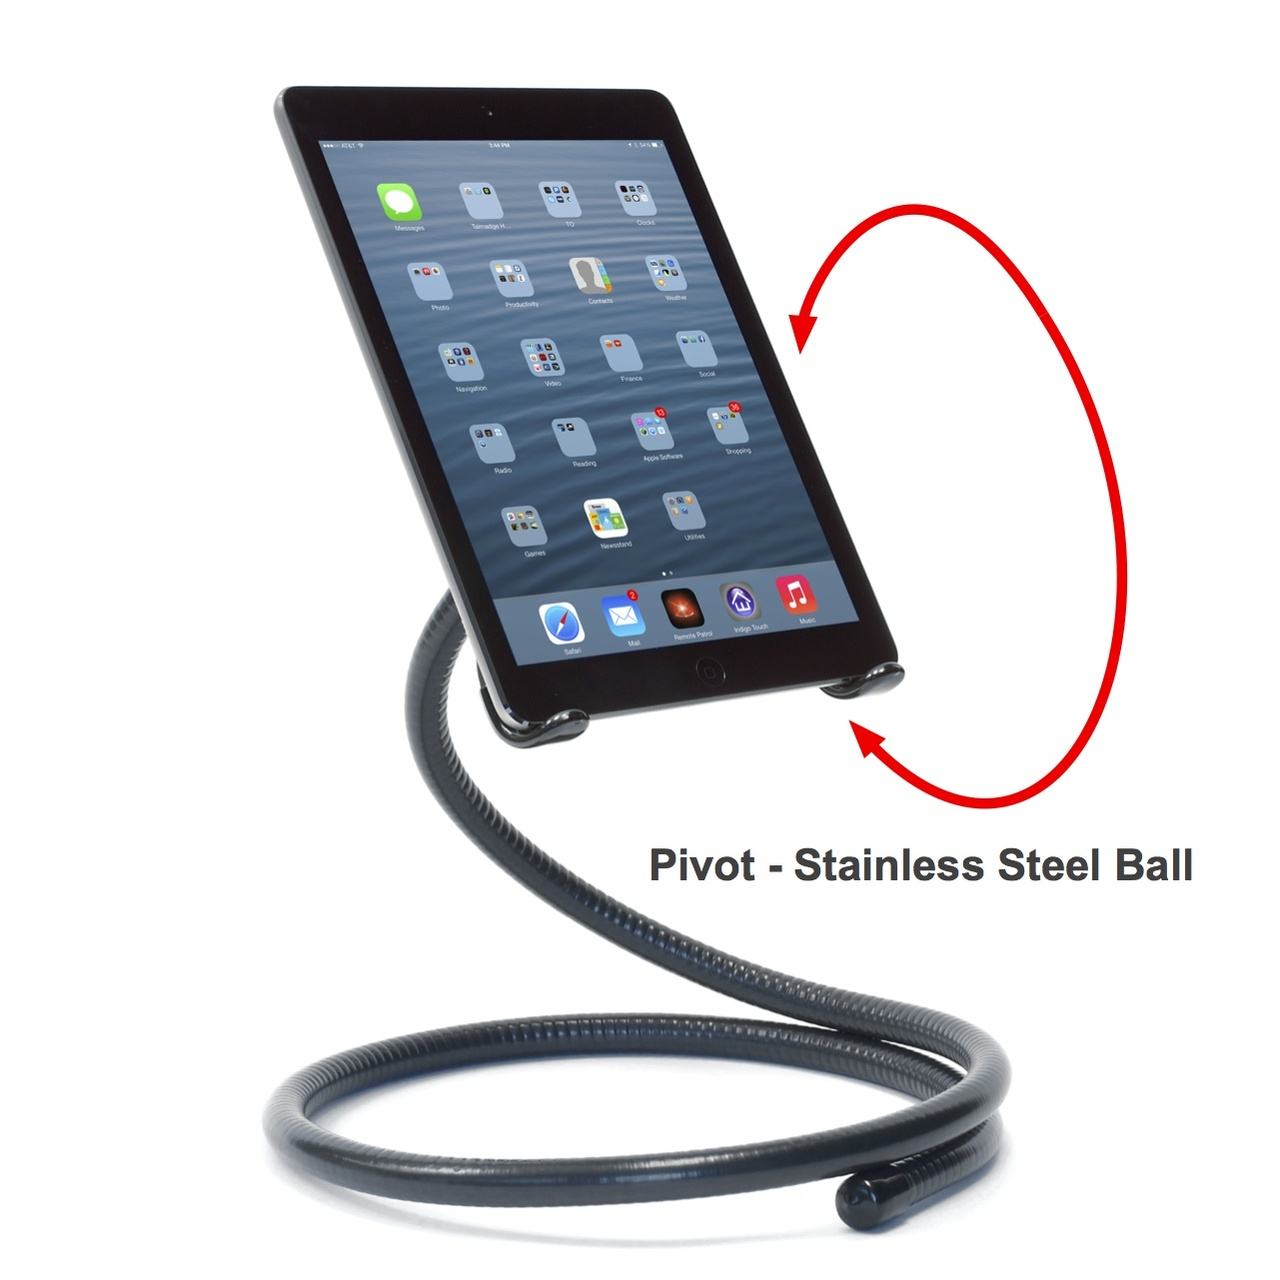 Pivot - Stainless Steel Ball